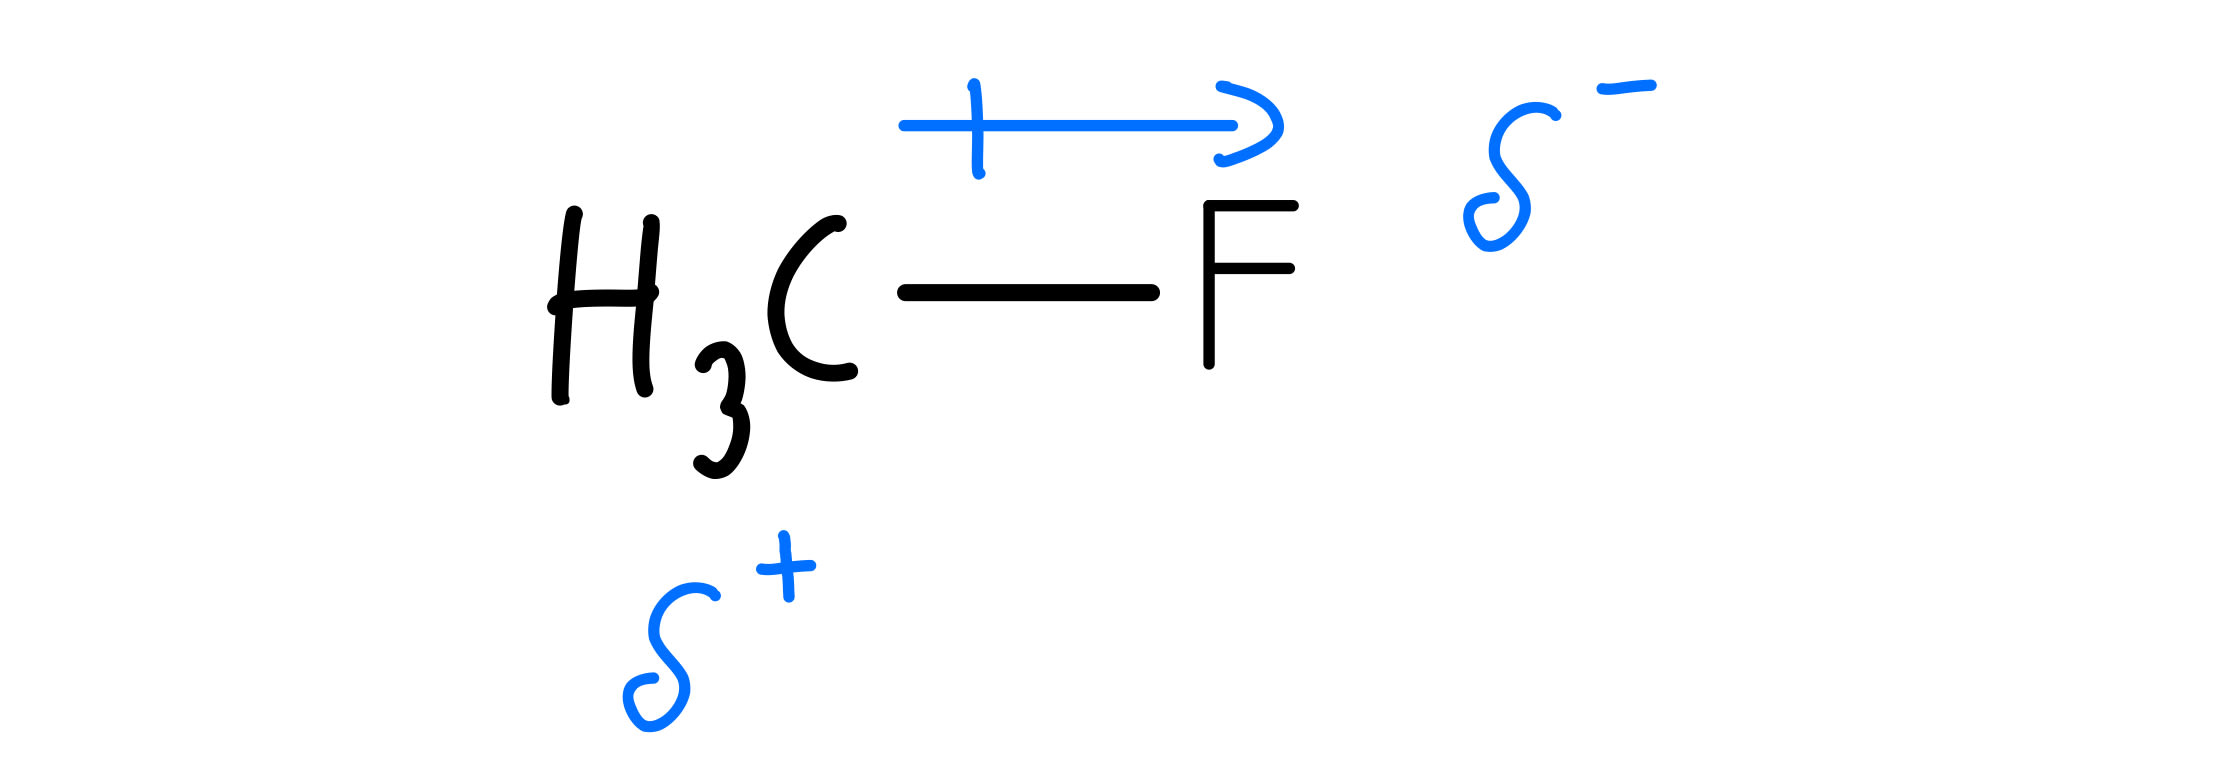 Dipole in fluoromethane